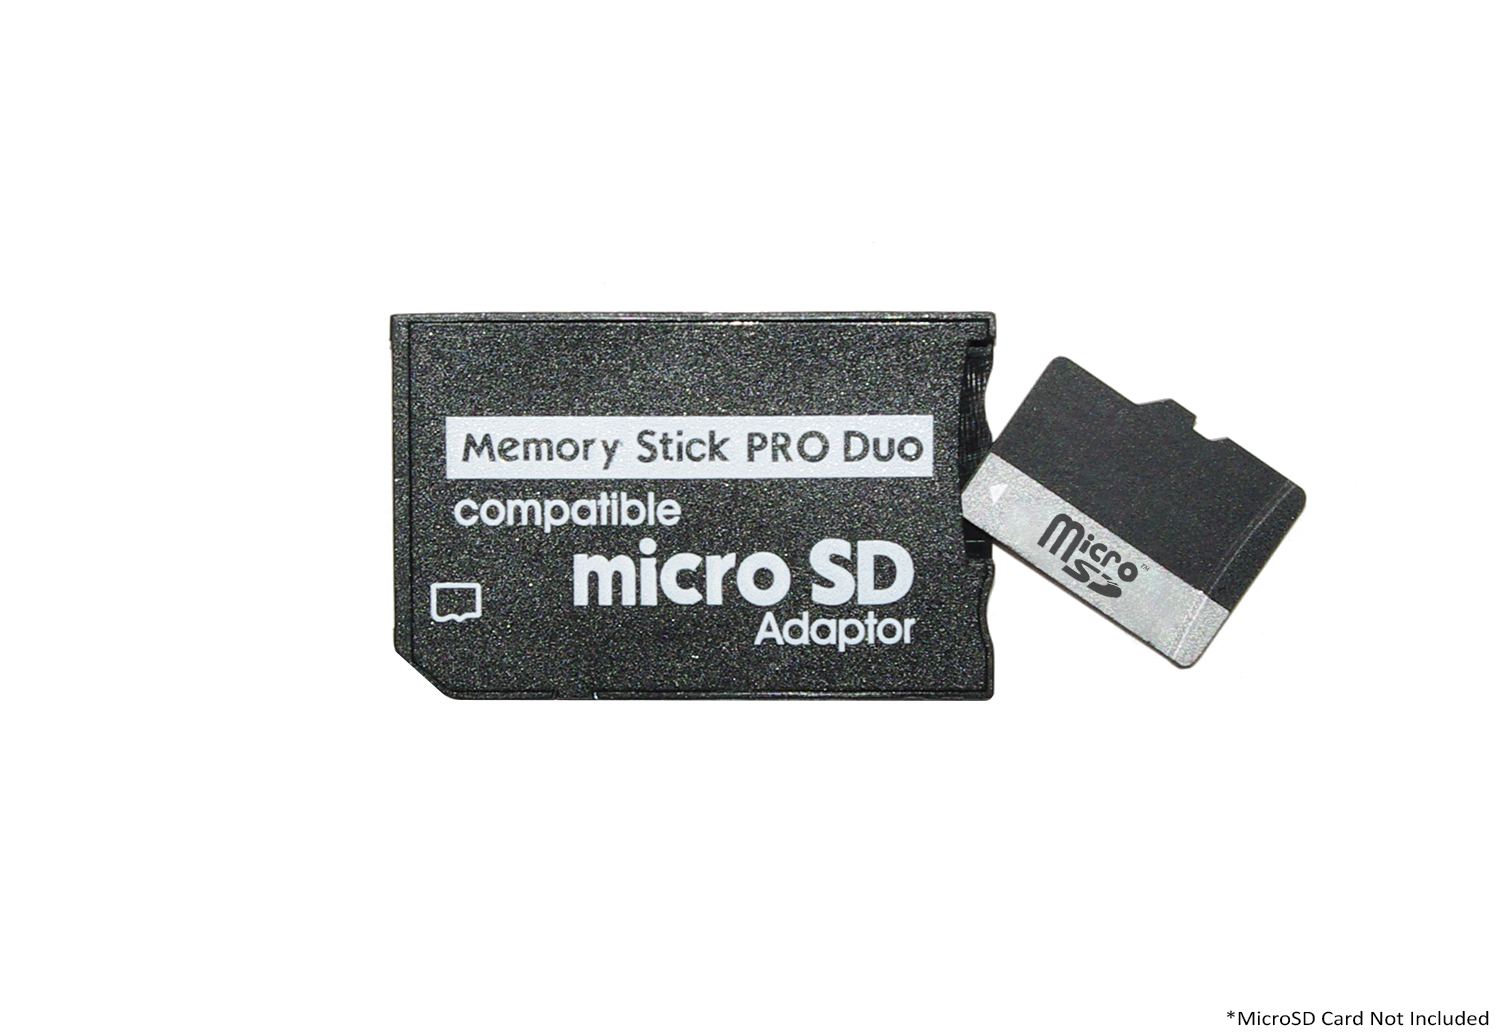 Neon Microsd To Ms Pro Duo Adapter Supports Microsdhc Memory Card Sony Psp 8gb Stick